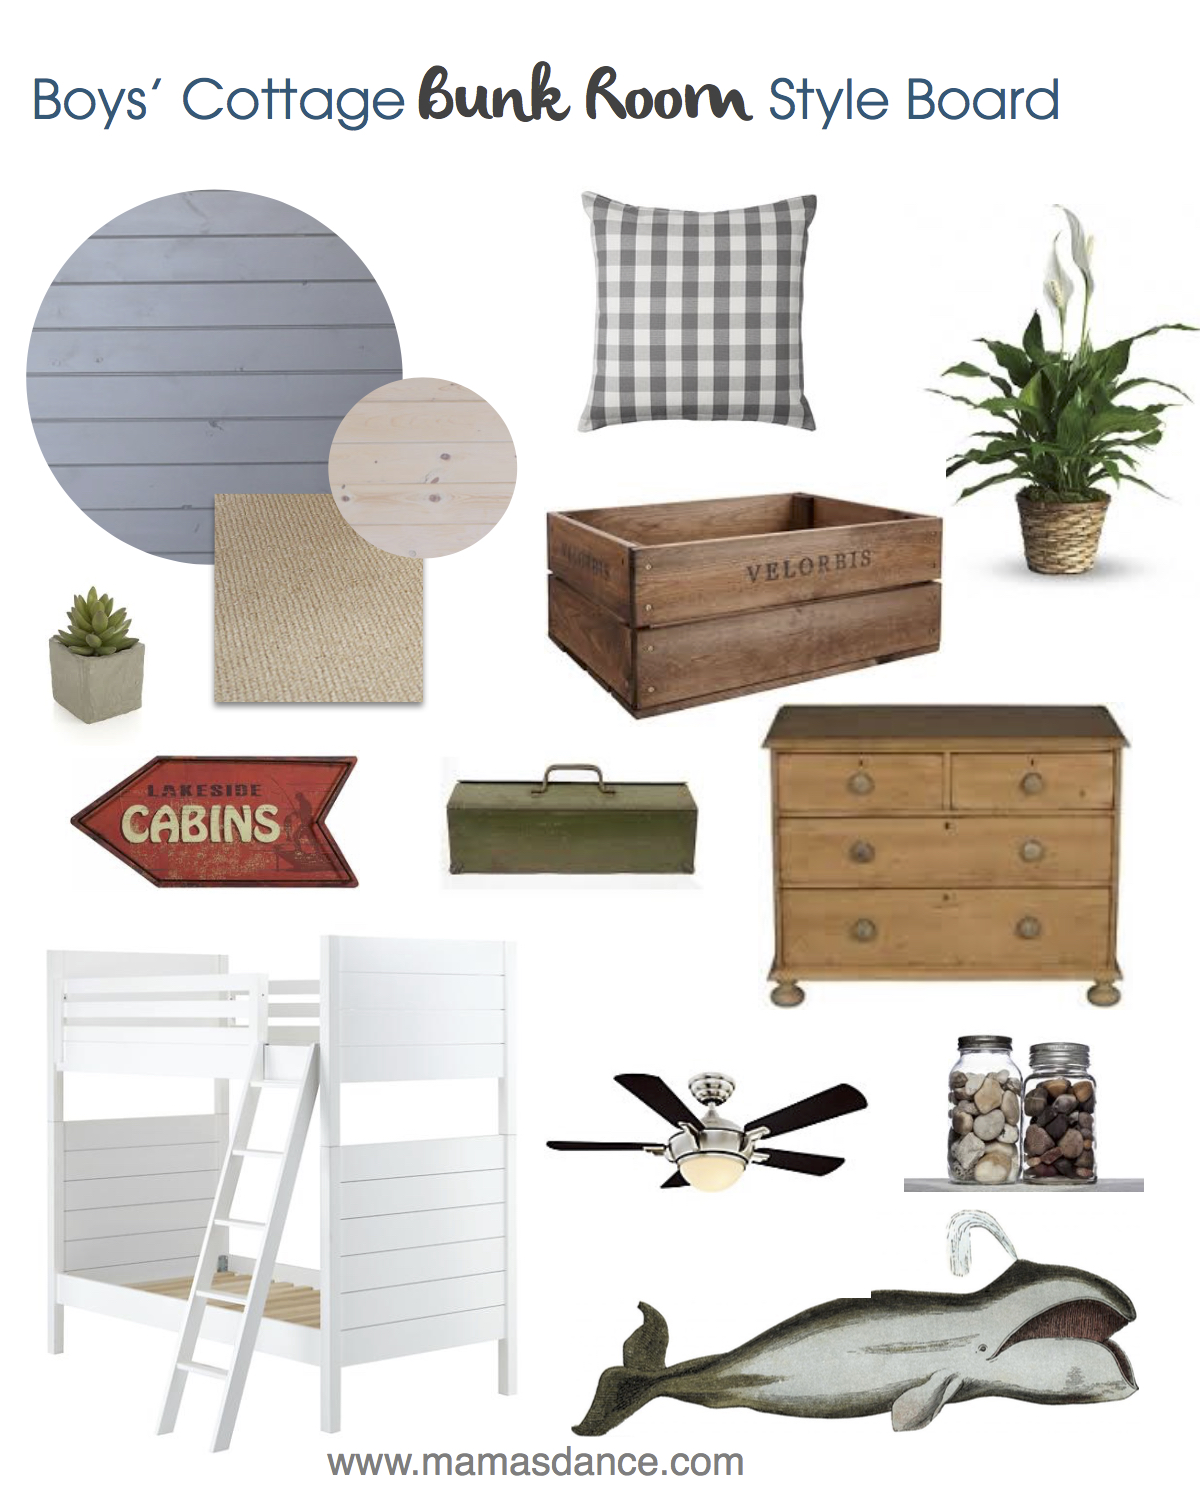 Cottage Bunk Room Style Board